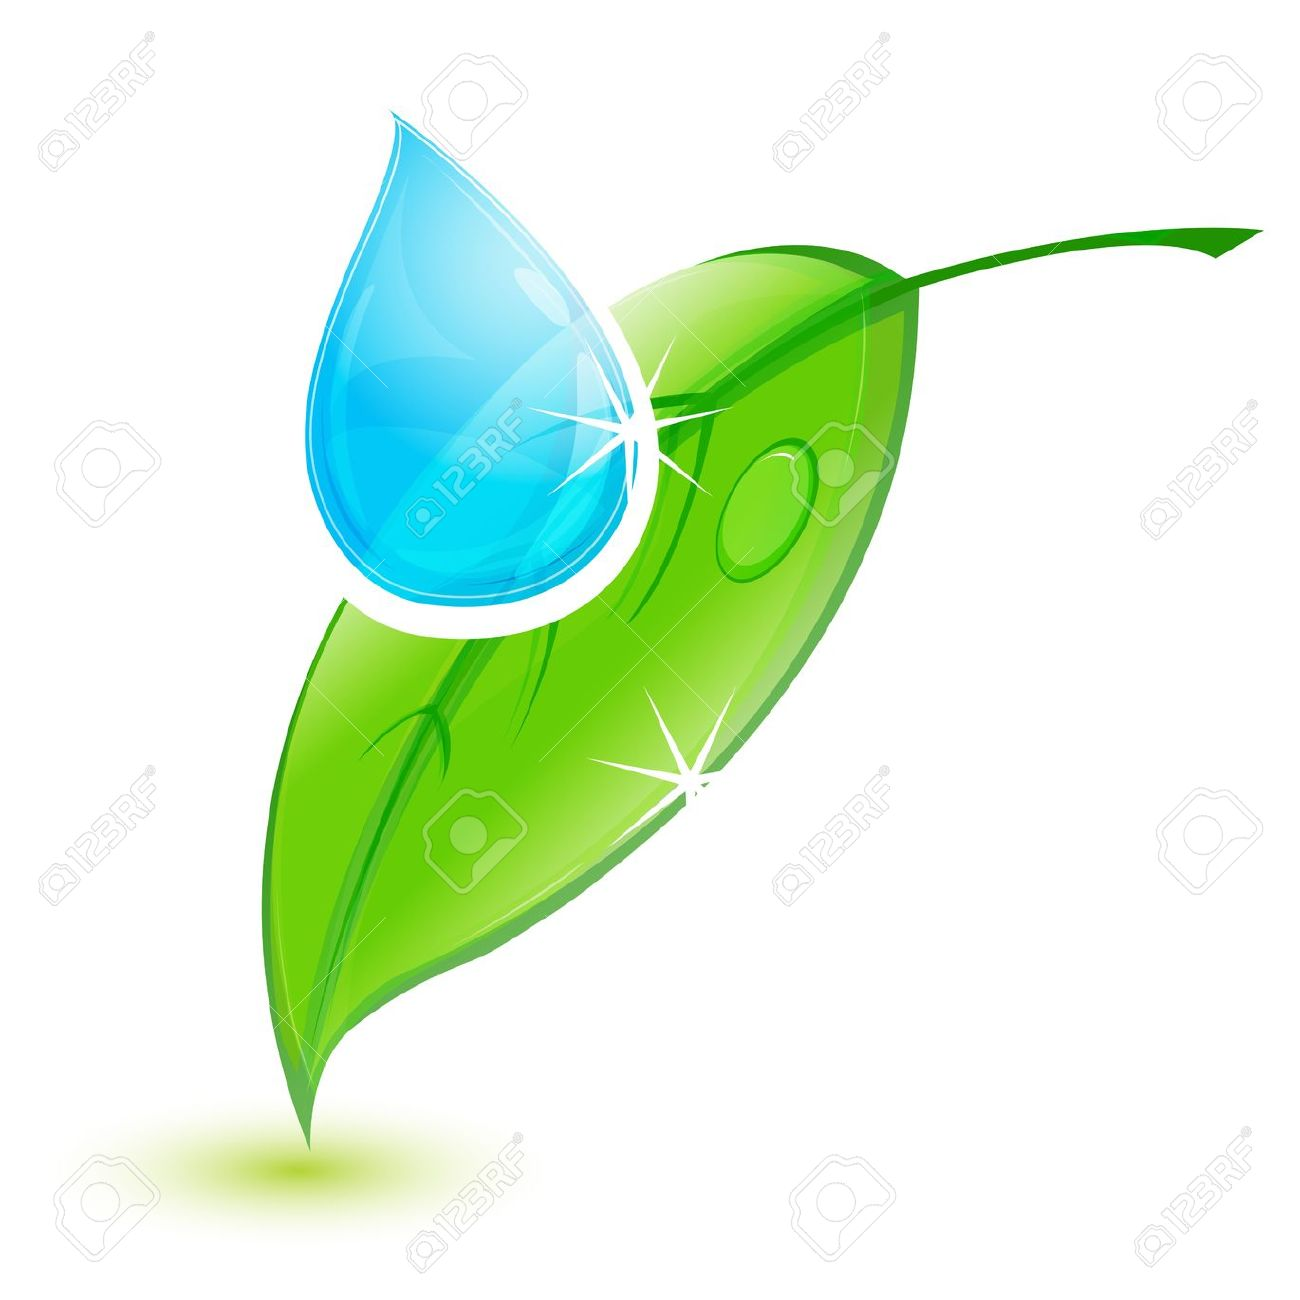 Illustration Of Leaf With Water Drop On White Background Royalty.